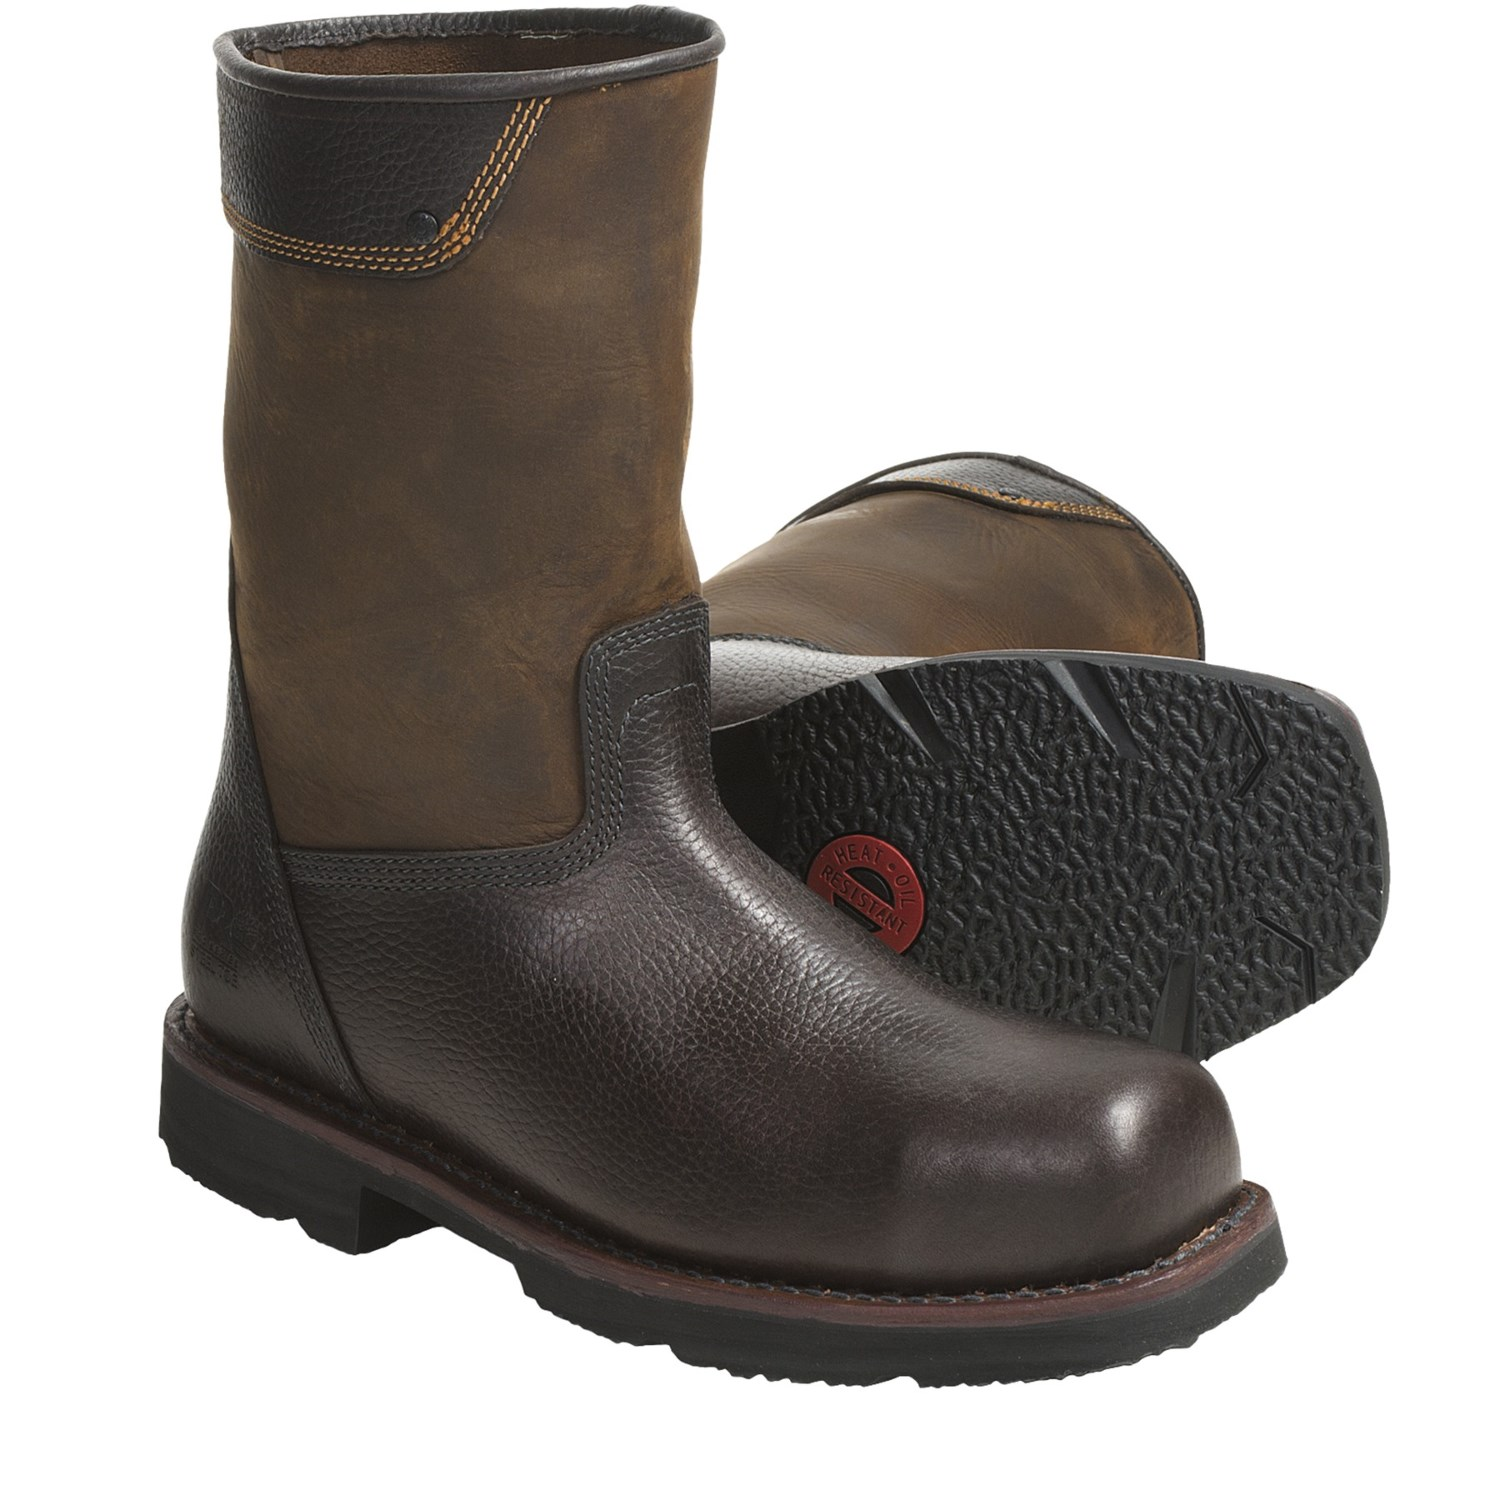 Cheap Steel Toe Work Boots - Cr Boot